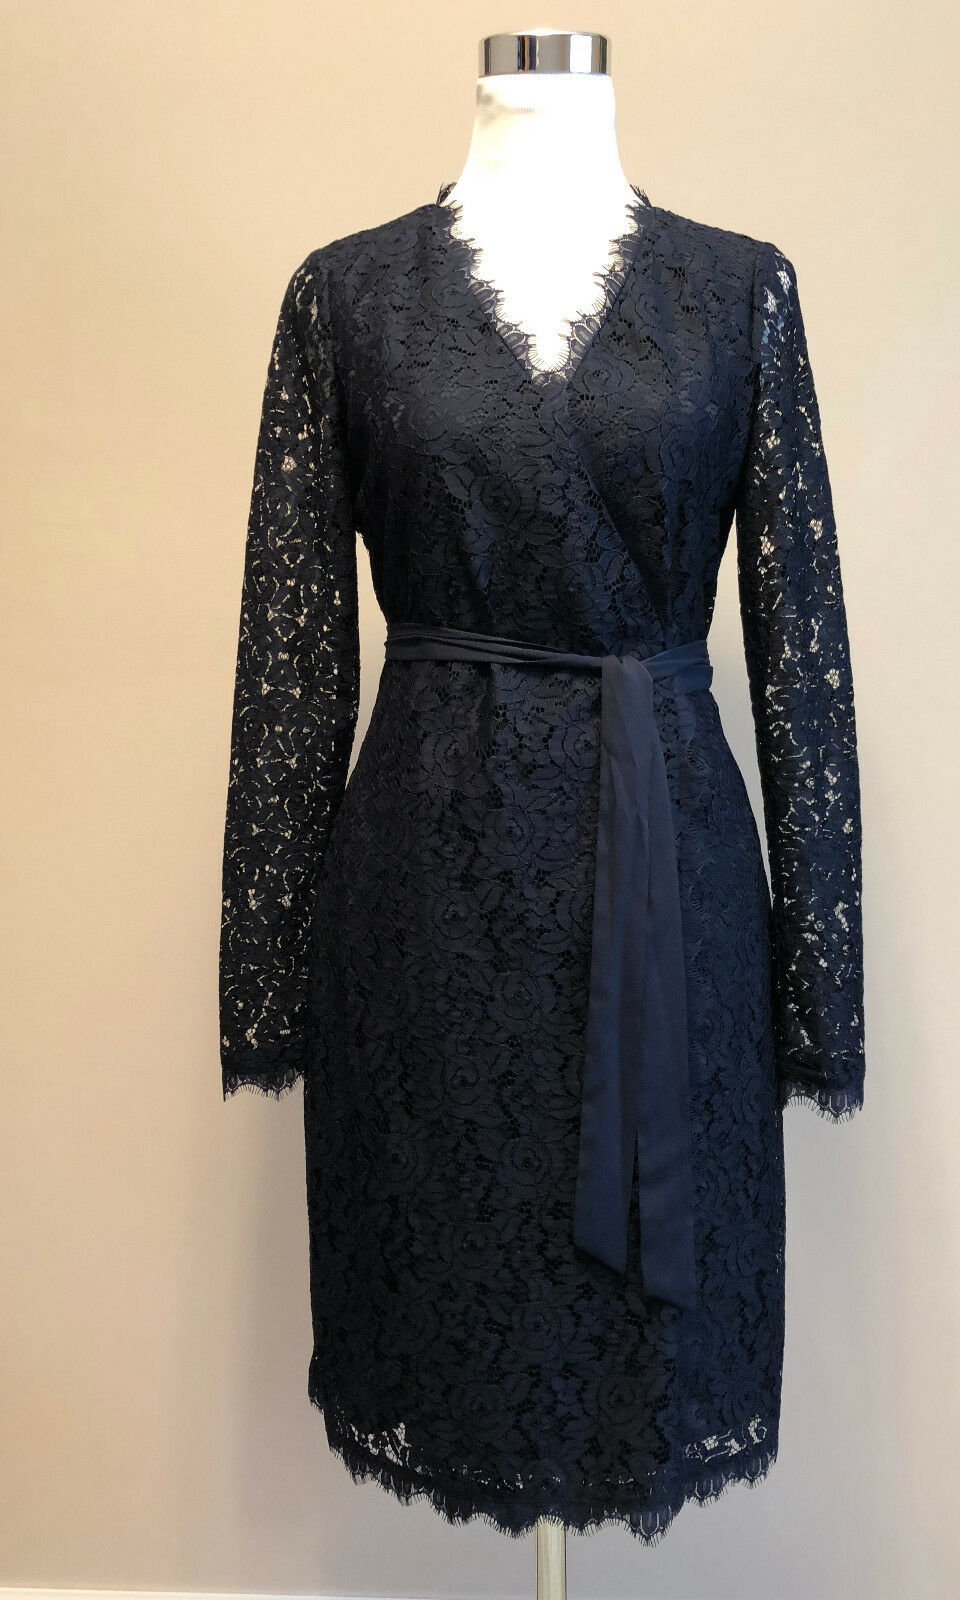 498 NWT DVF Julian Two LS Lace Alexander Wrap Navy Dress sz 2